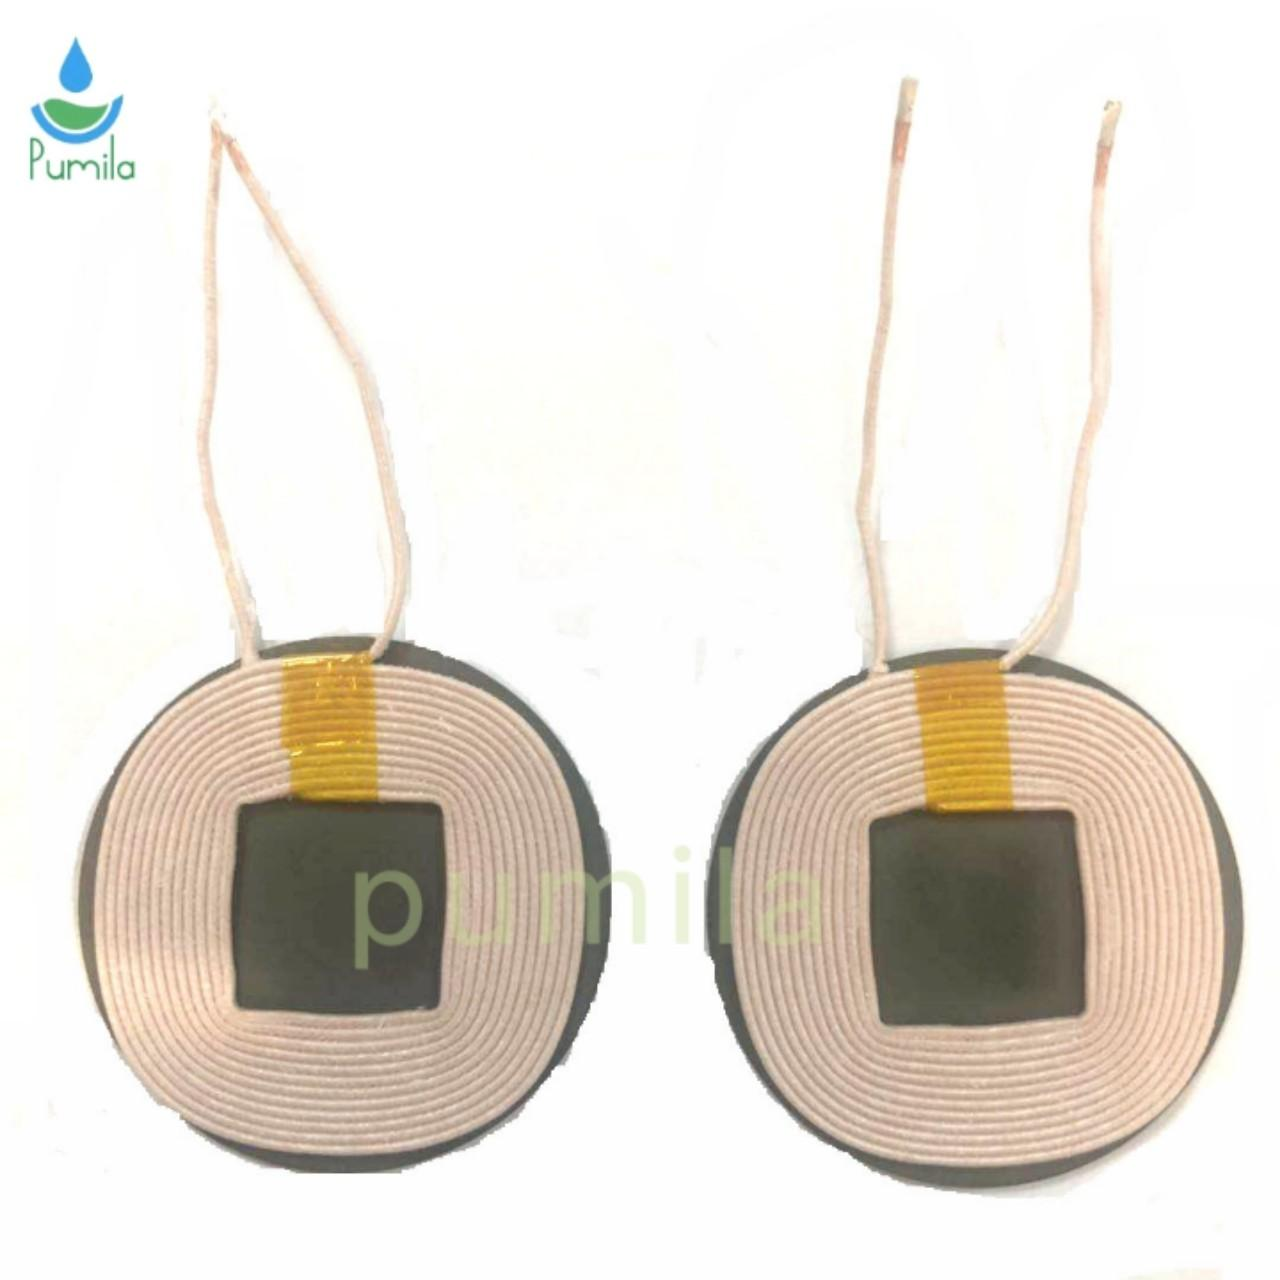 A12 wireless charging tx coil qi charger coil inductive pancake coil for sale